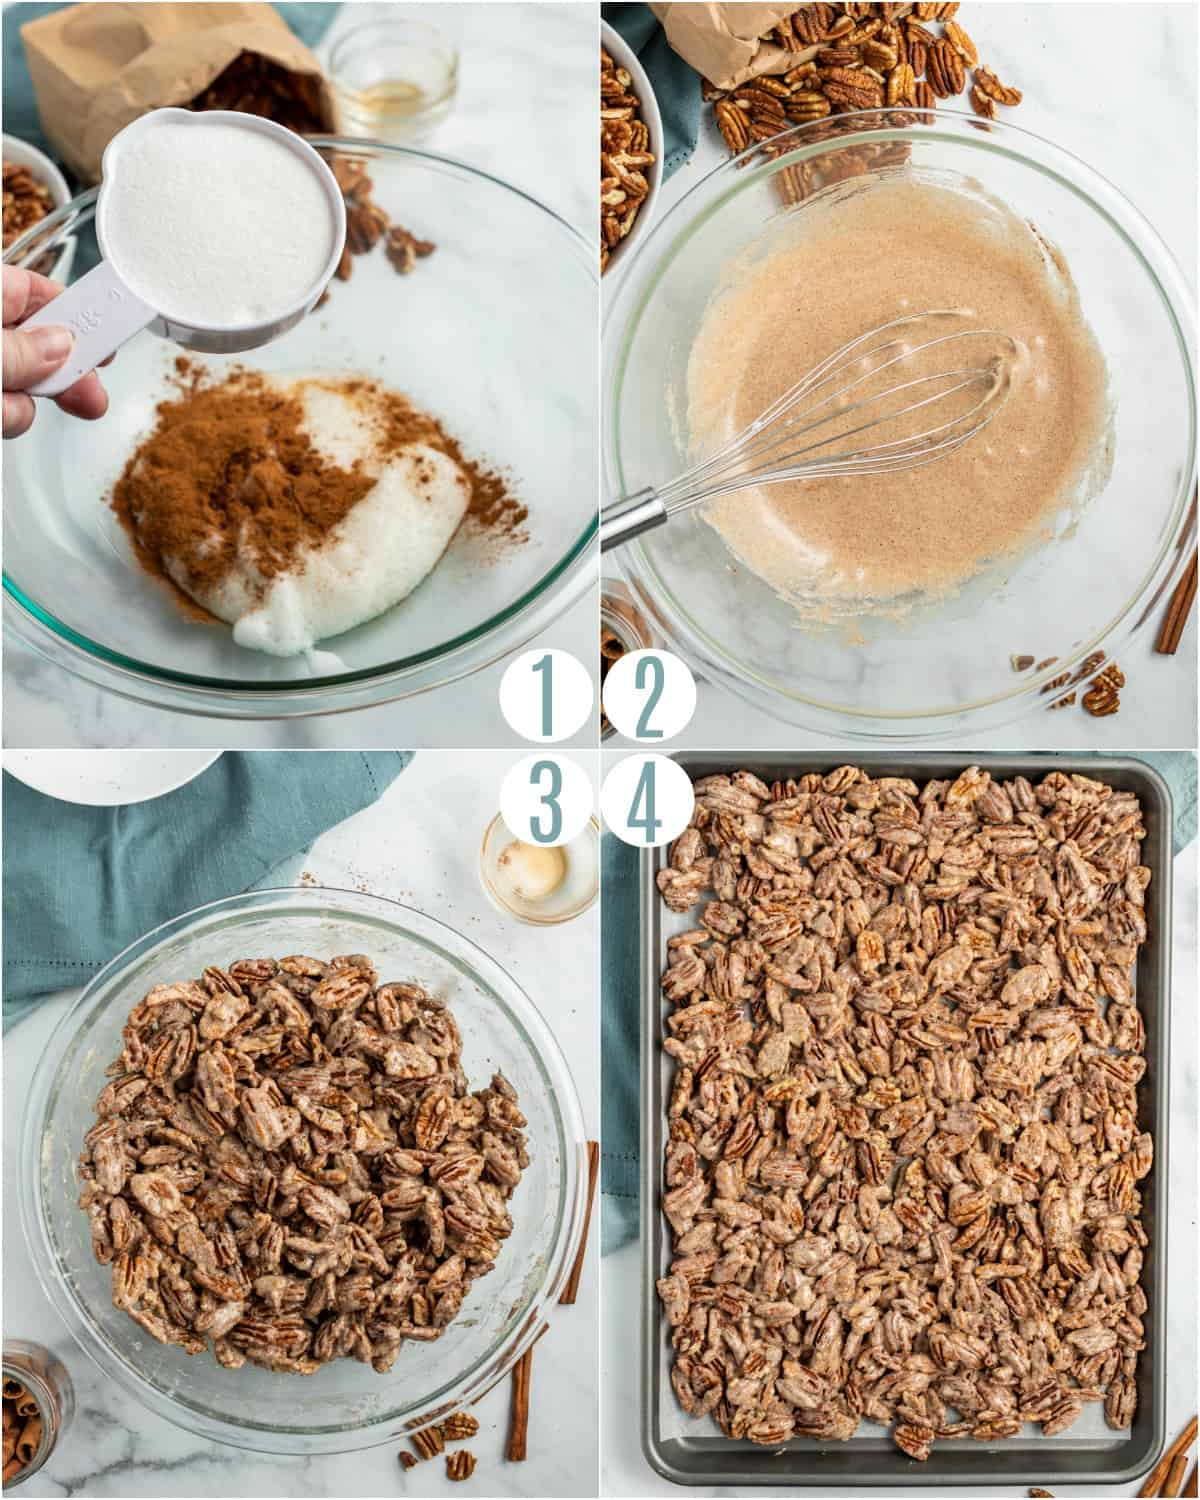 Step by step photos showing how to make candied cinnamon pecans.